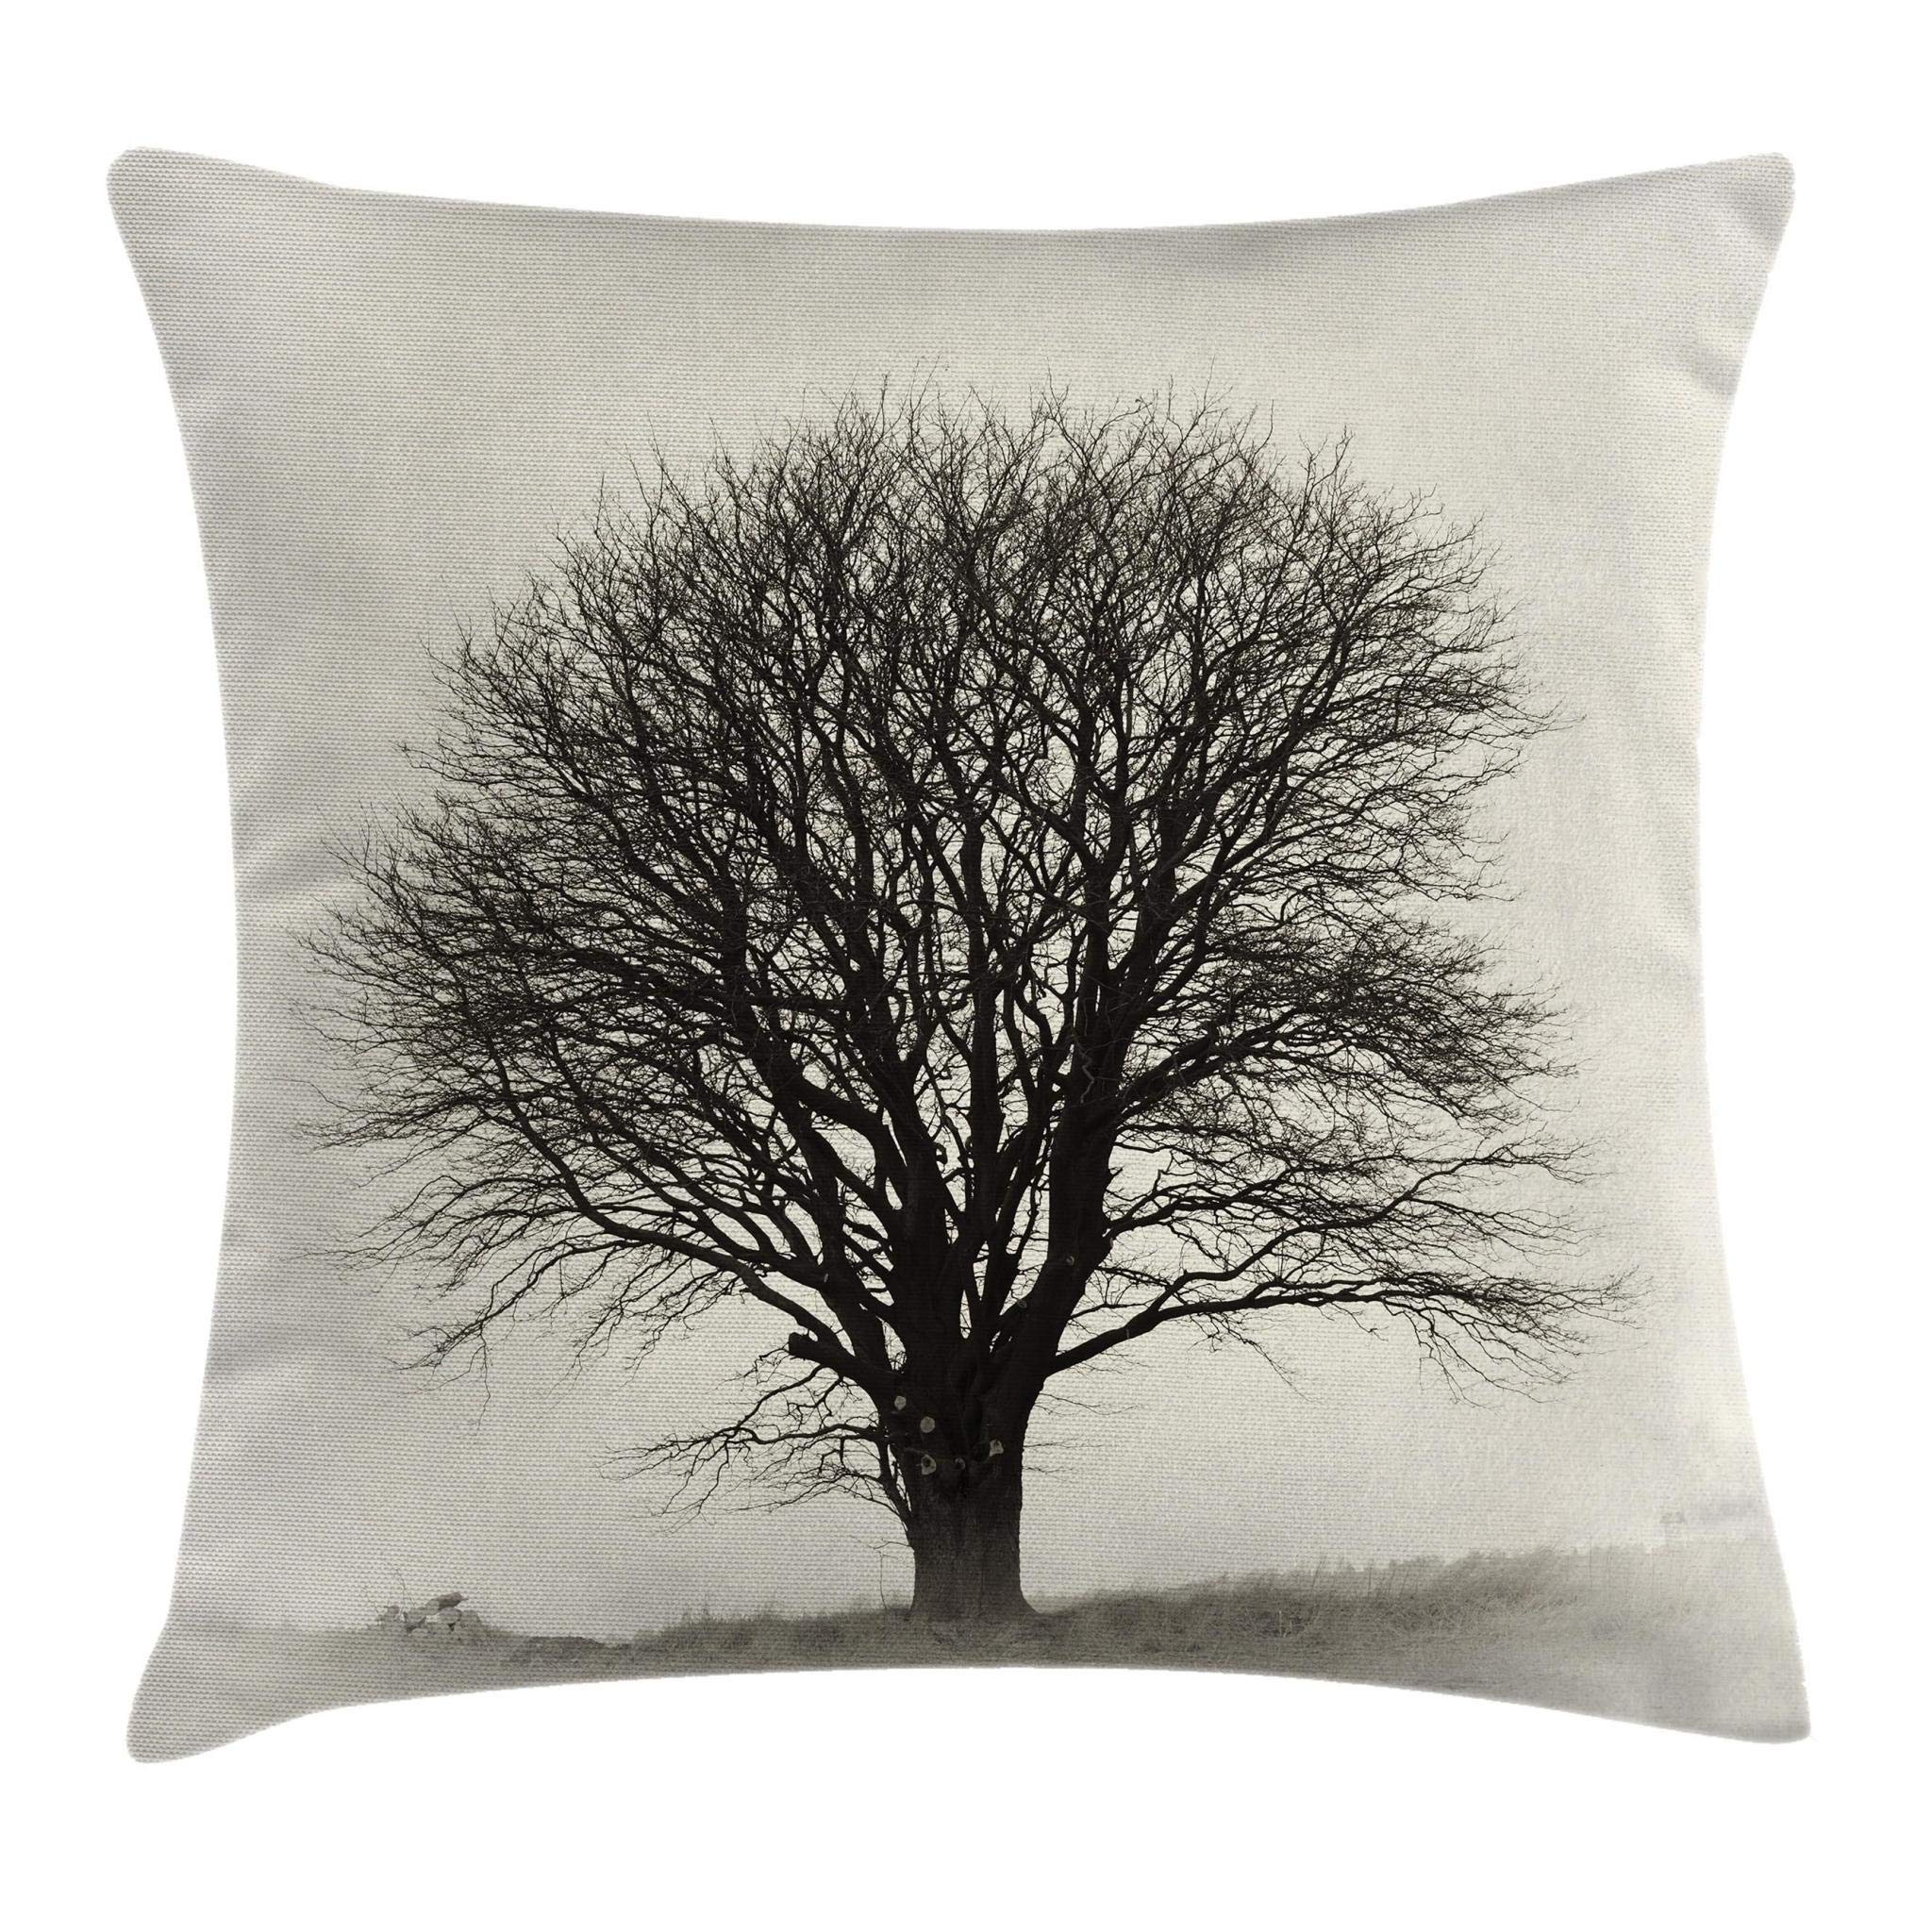 Ambesonne Grey Throw Pillow Cushion Cover, Photo of a Big Tree on a Field Branches Fall Season Monochromic Landscape Artwork, Decorative Square Accent Pillow Case, 18'' X 18'', Beige Black